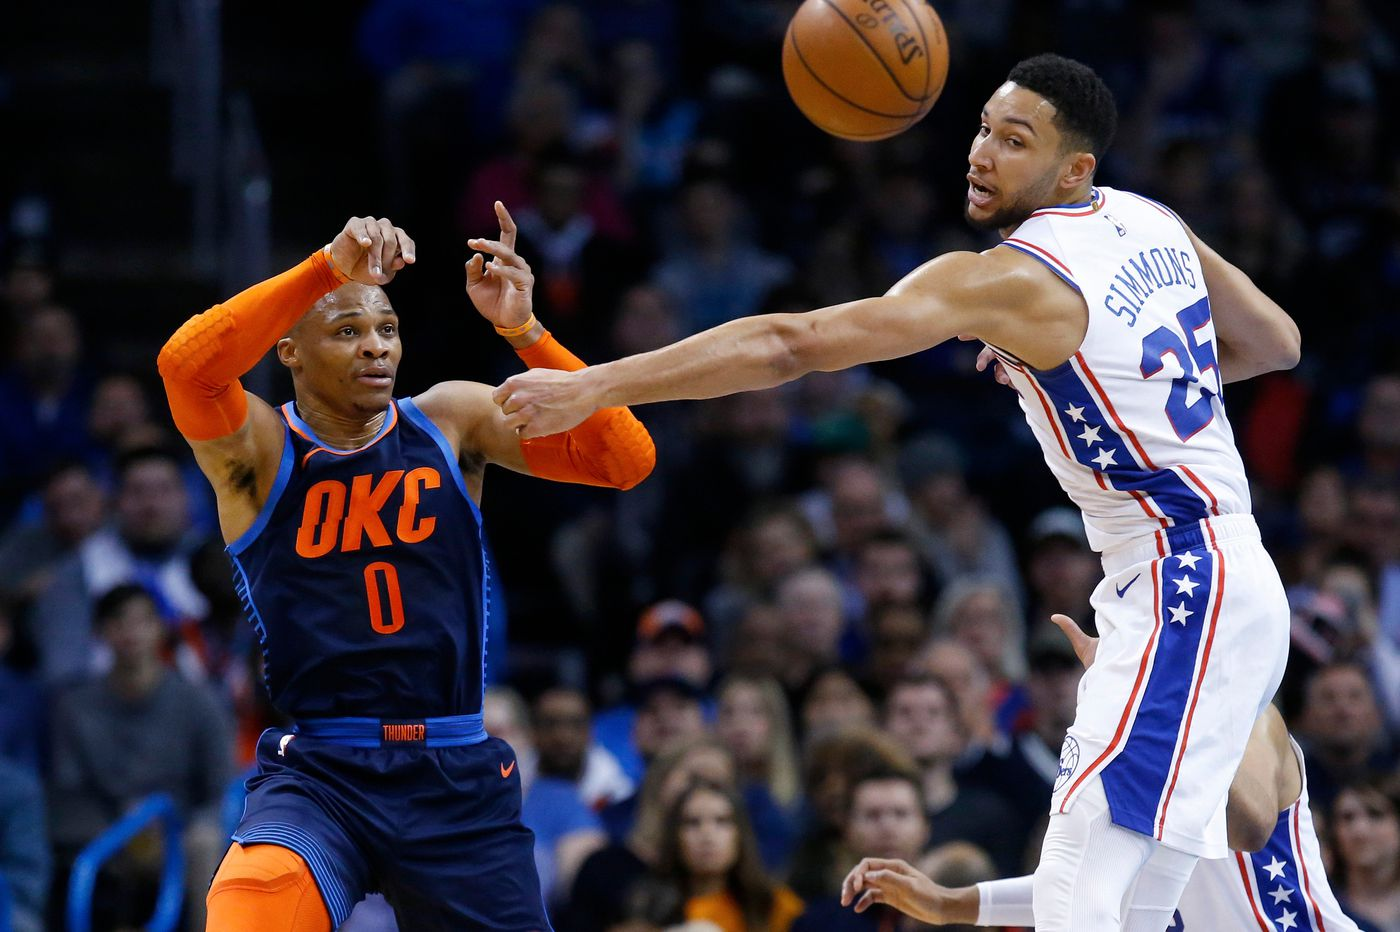 b55d74b73 Sixers beat Oklahoma City Thunder to snap series losing streak behind  Tobias Harris